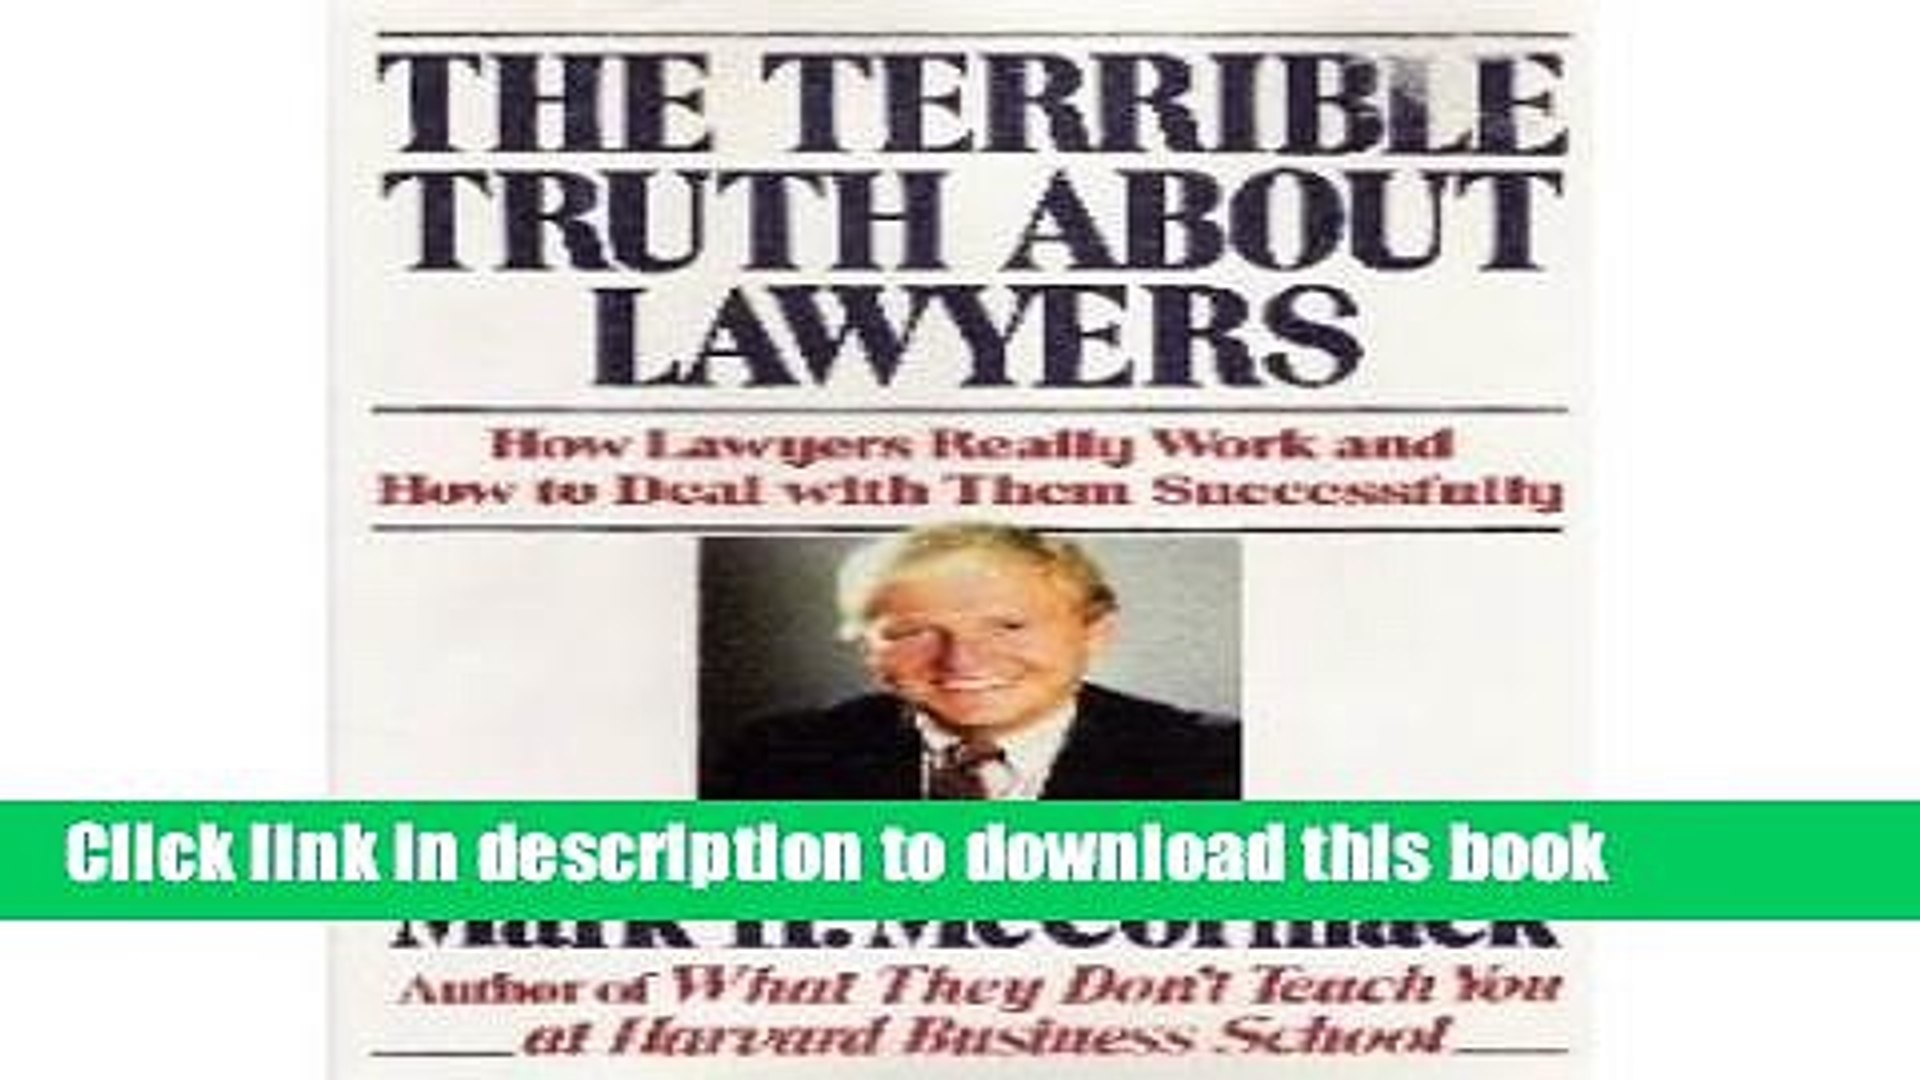 [PDF]  The Terrible Truth About Lawyers: How Lawyers Really Work and How to Deal With Them